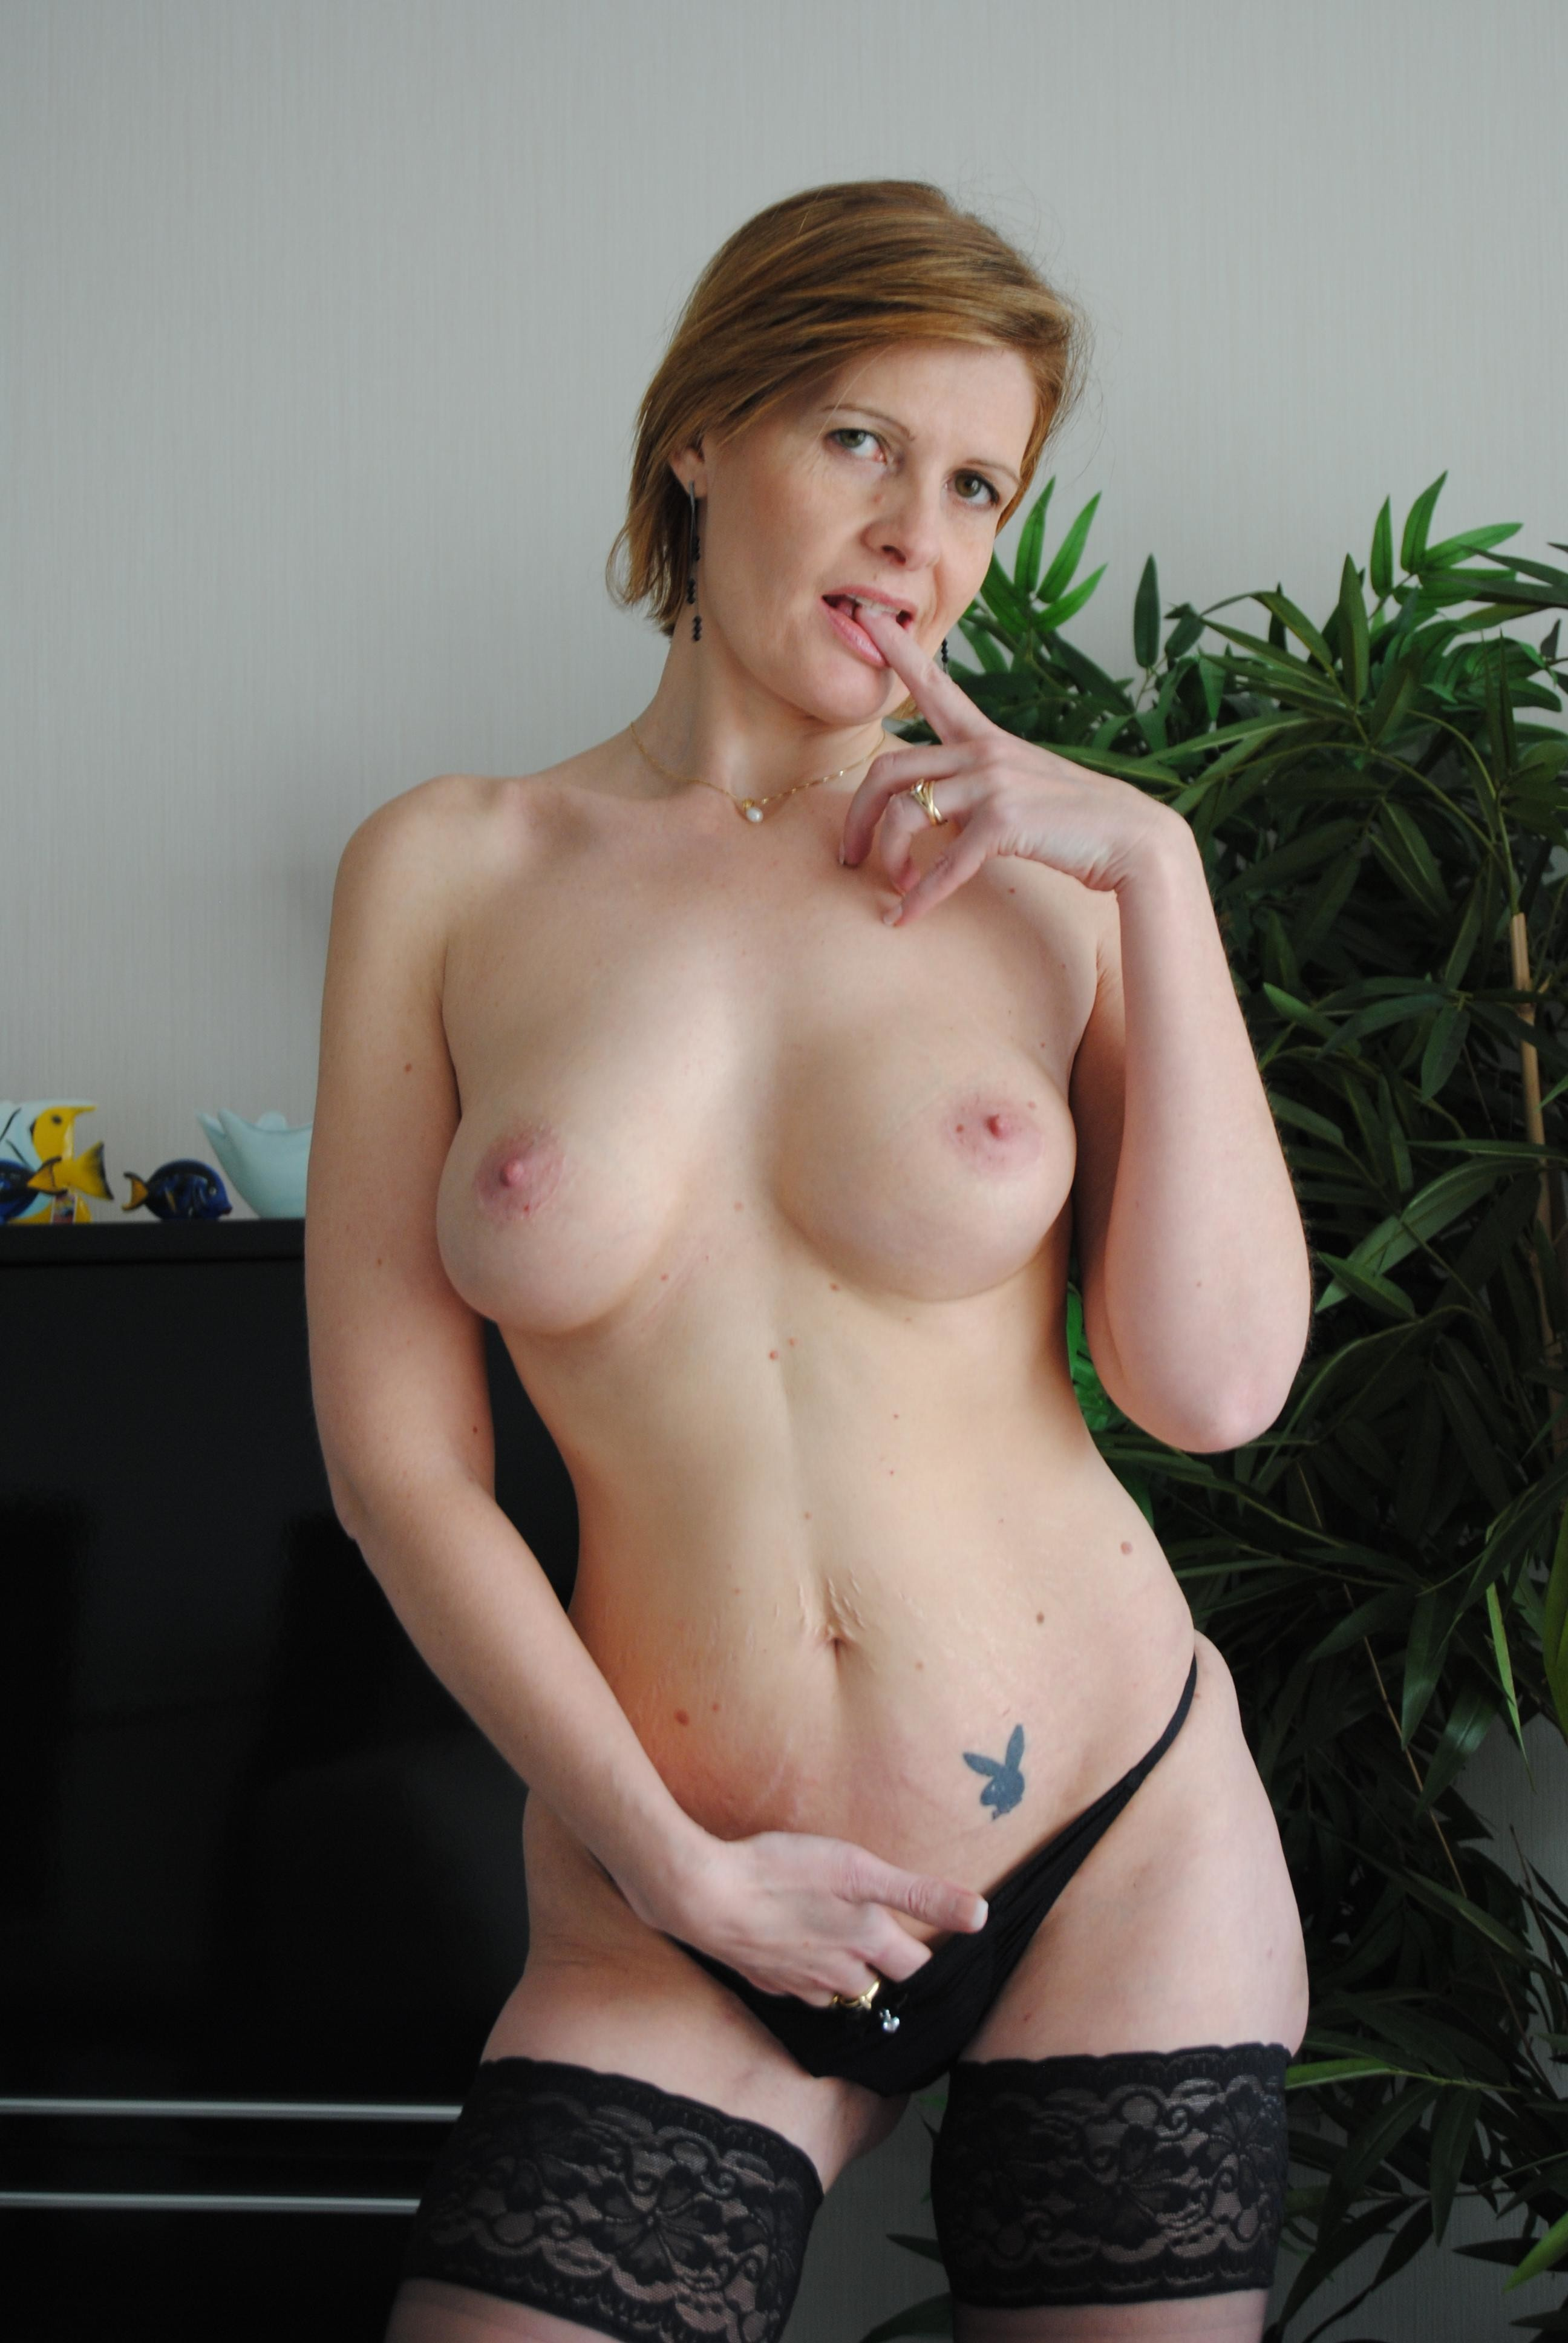 Are young french porn star pics apologise, but